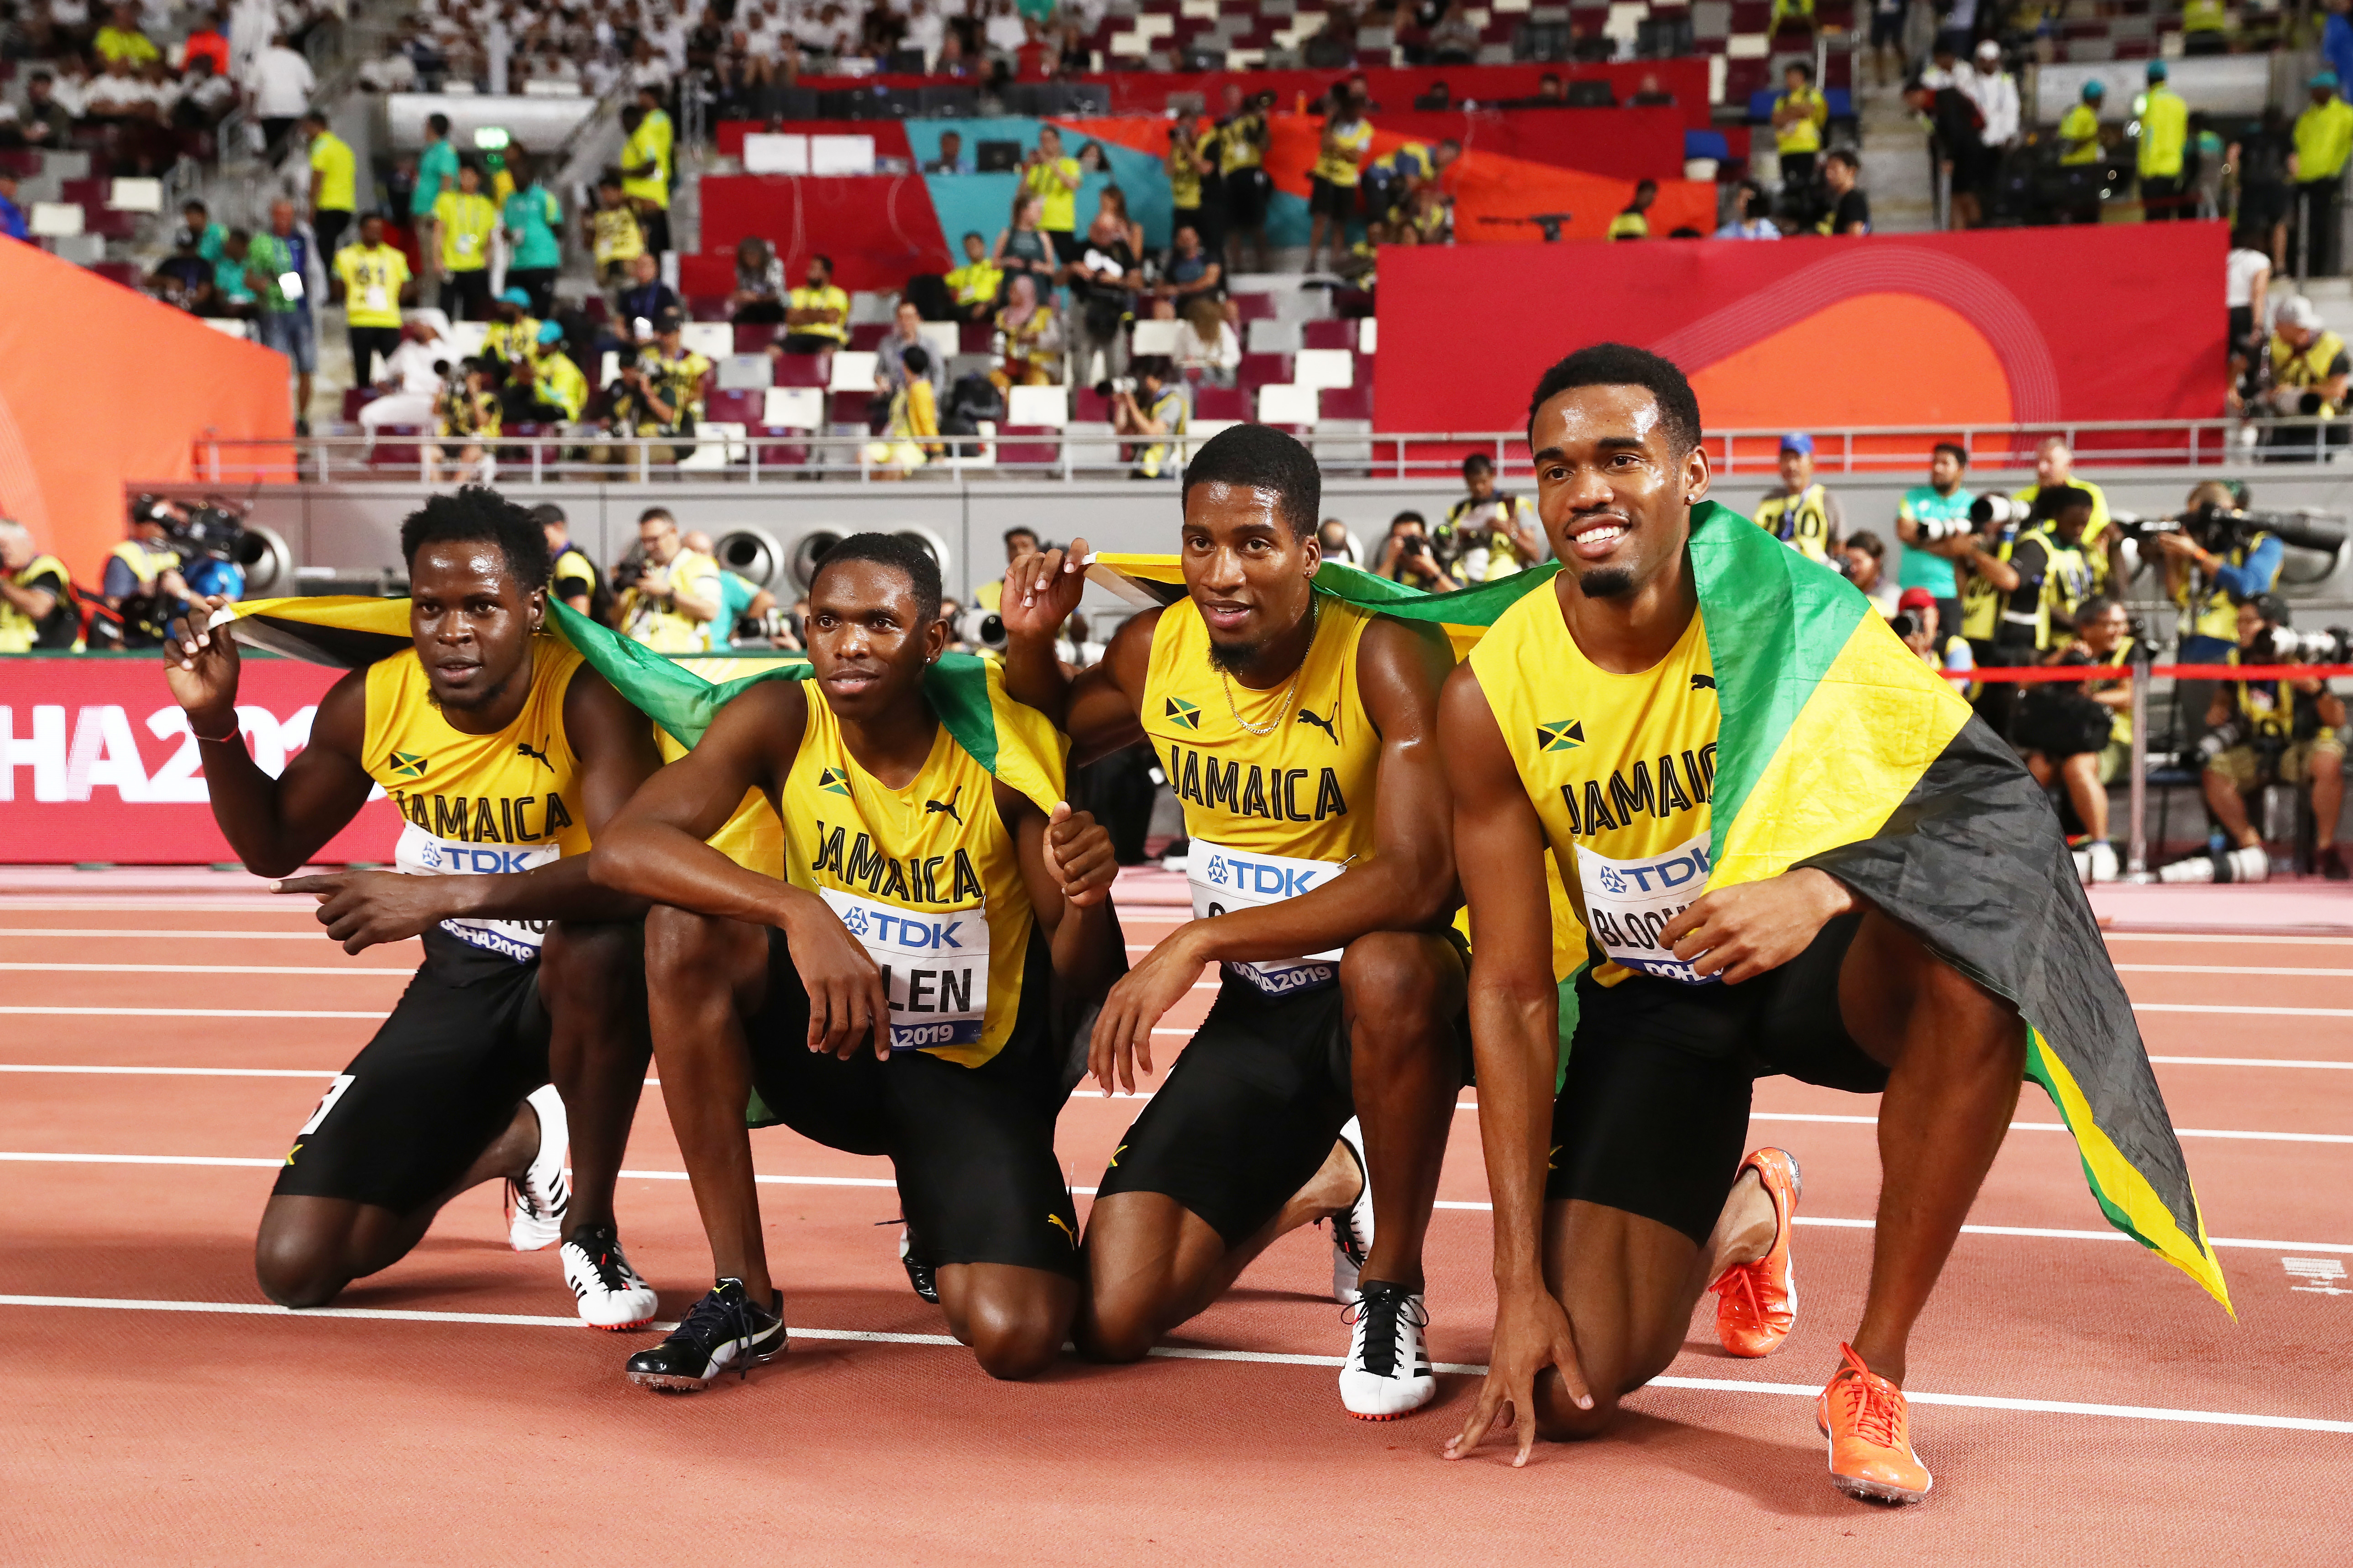 Jamaica 4x400m male team wins silver at Doha 2019